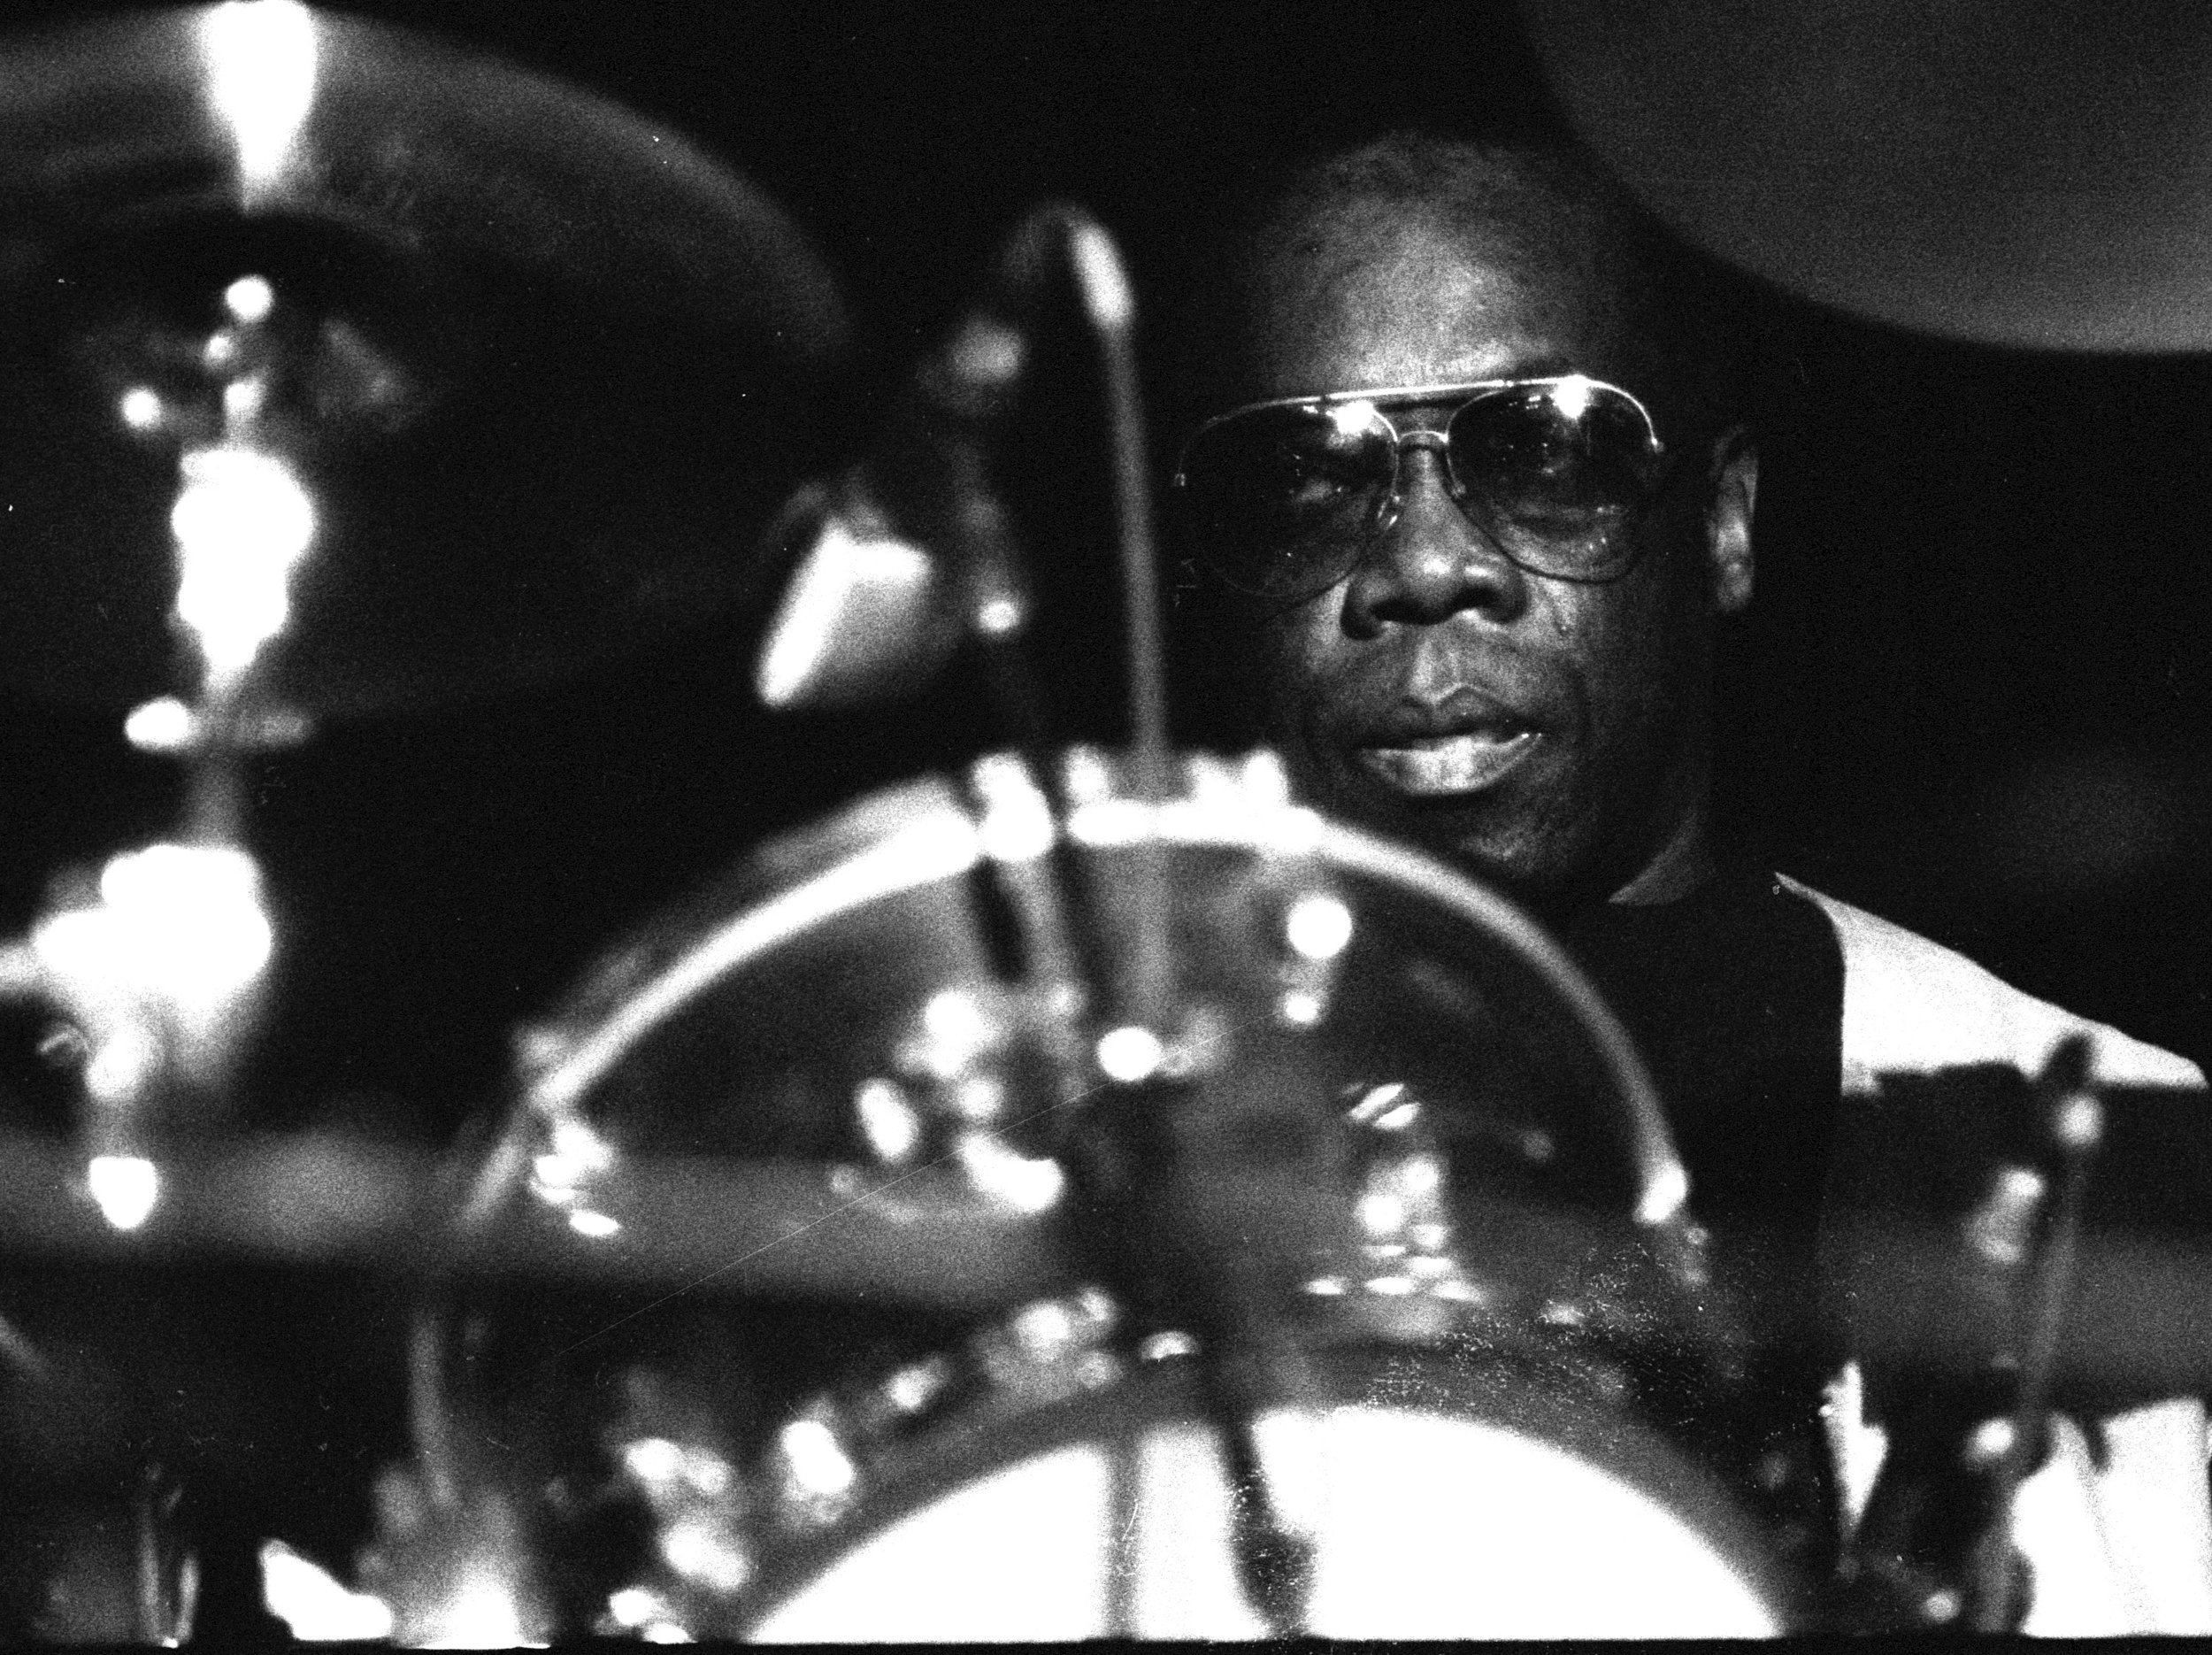 andrewcyrille(A).jpg